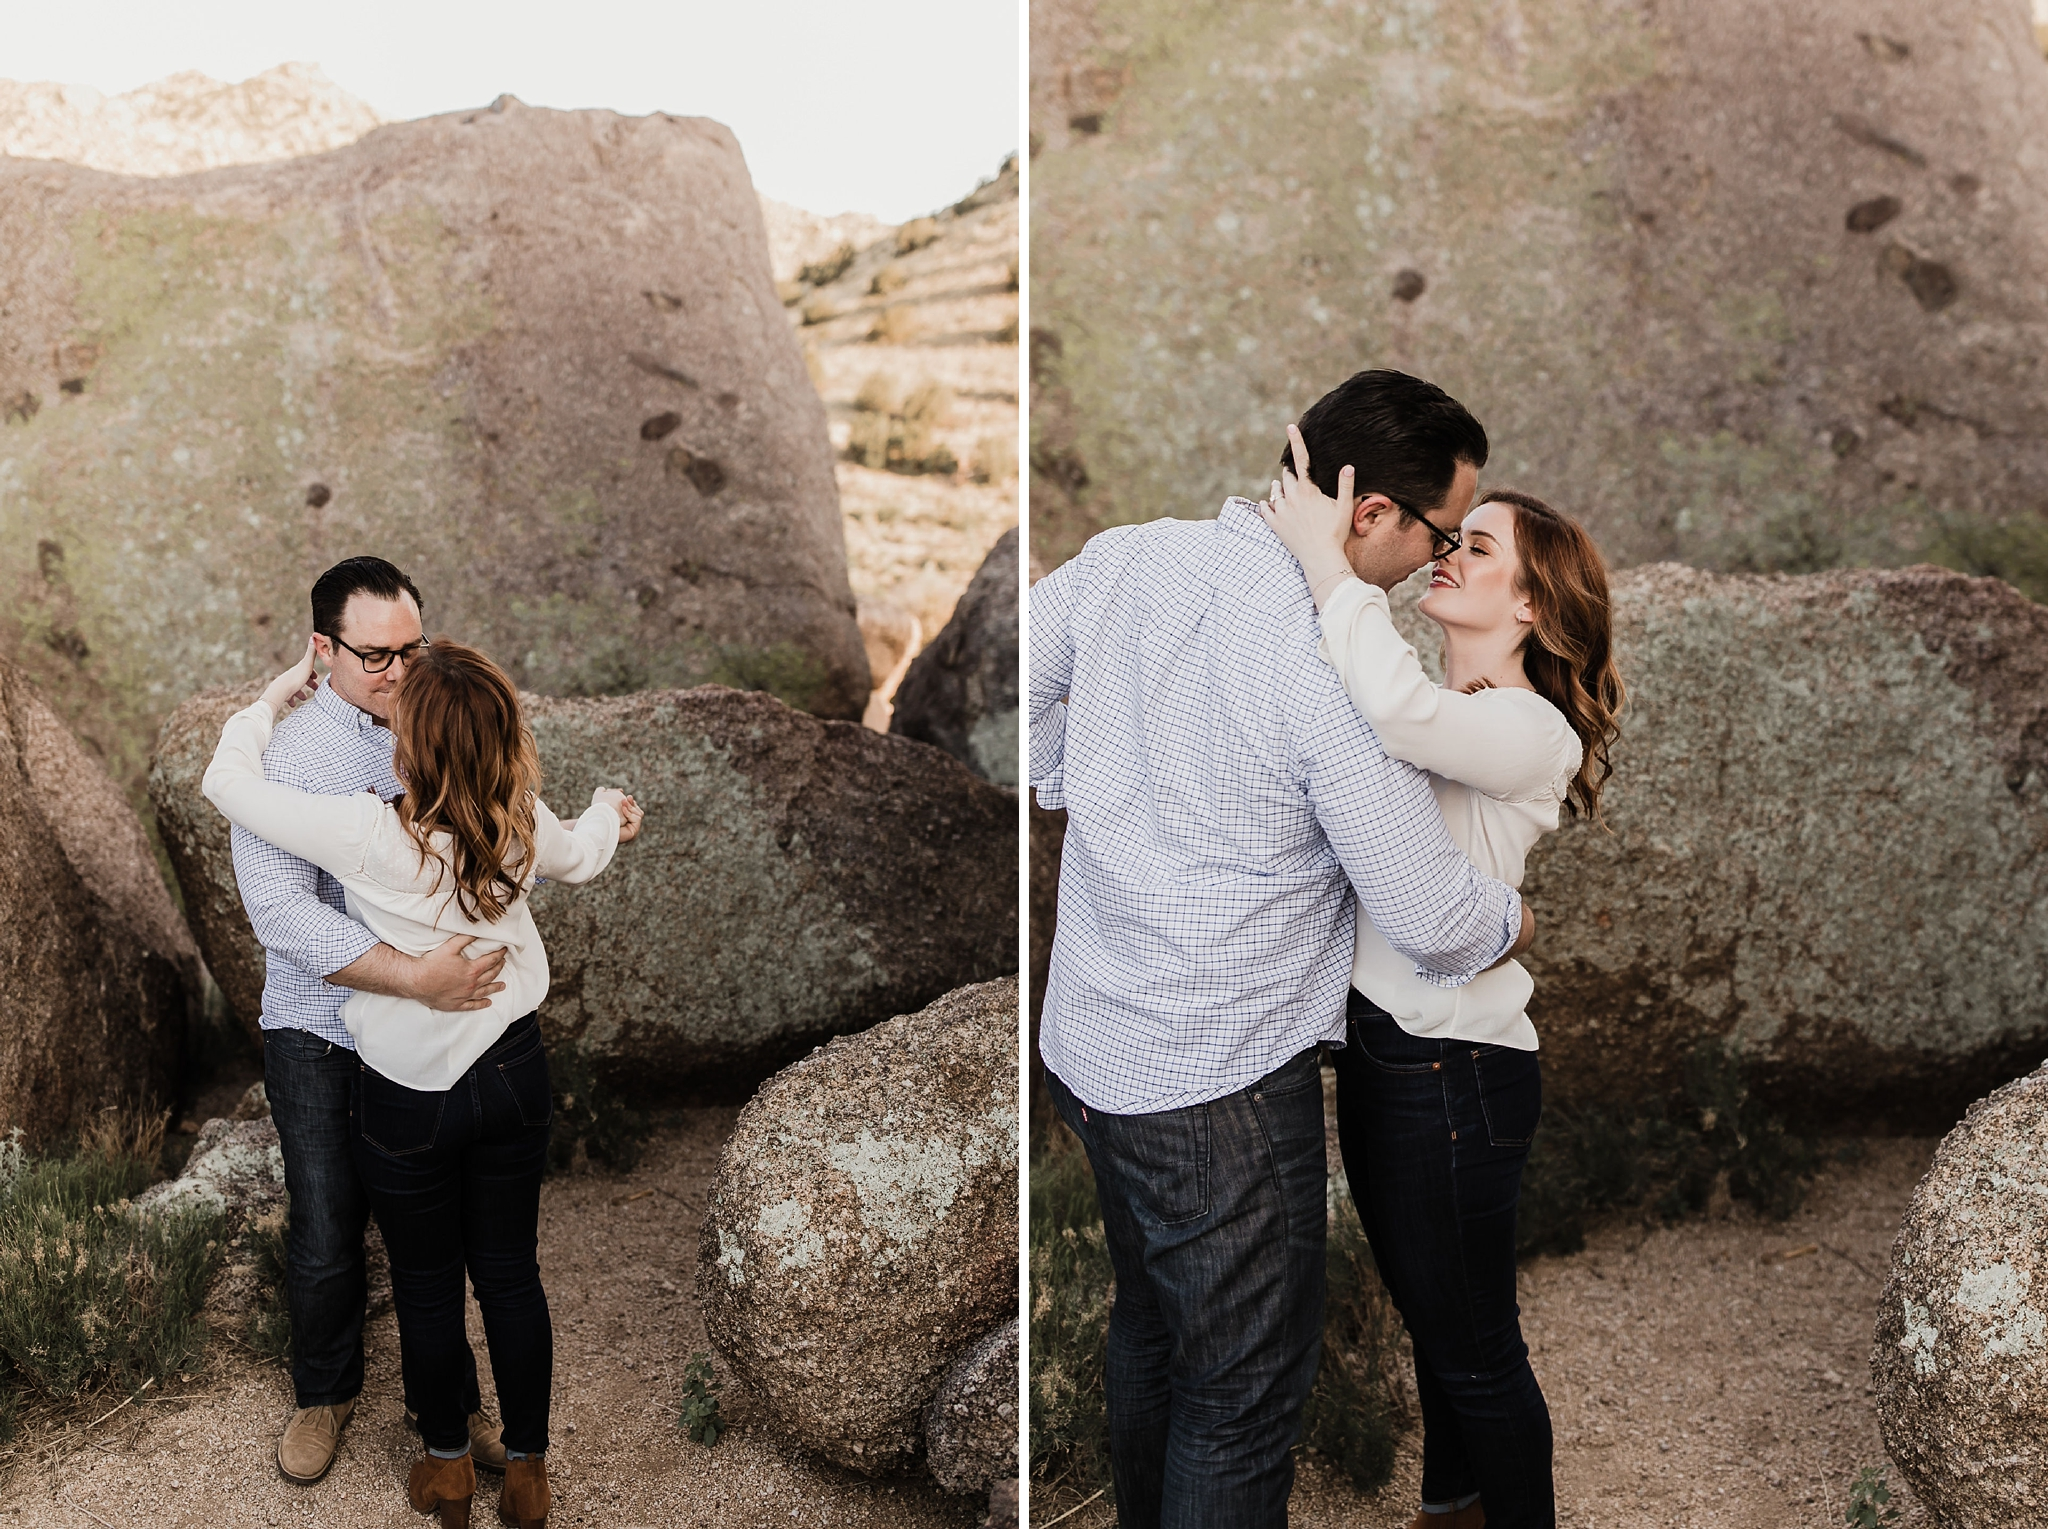 Alicia+lucia+photography+-+albuquerque+wedding+photographer+-+santa+fe+wedding+photography+-+new+mexico+wedding+photographer+-+new+mexico+wedding+-+new+mexico+engagement+-+engagement+photographer+-+mountain+engagement+-+desert+engagement_0010.jpg